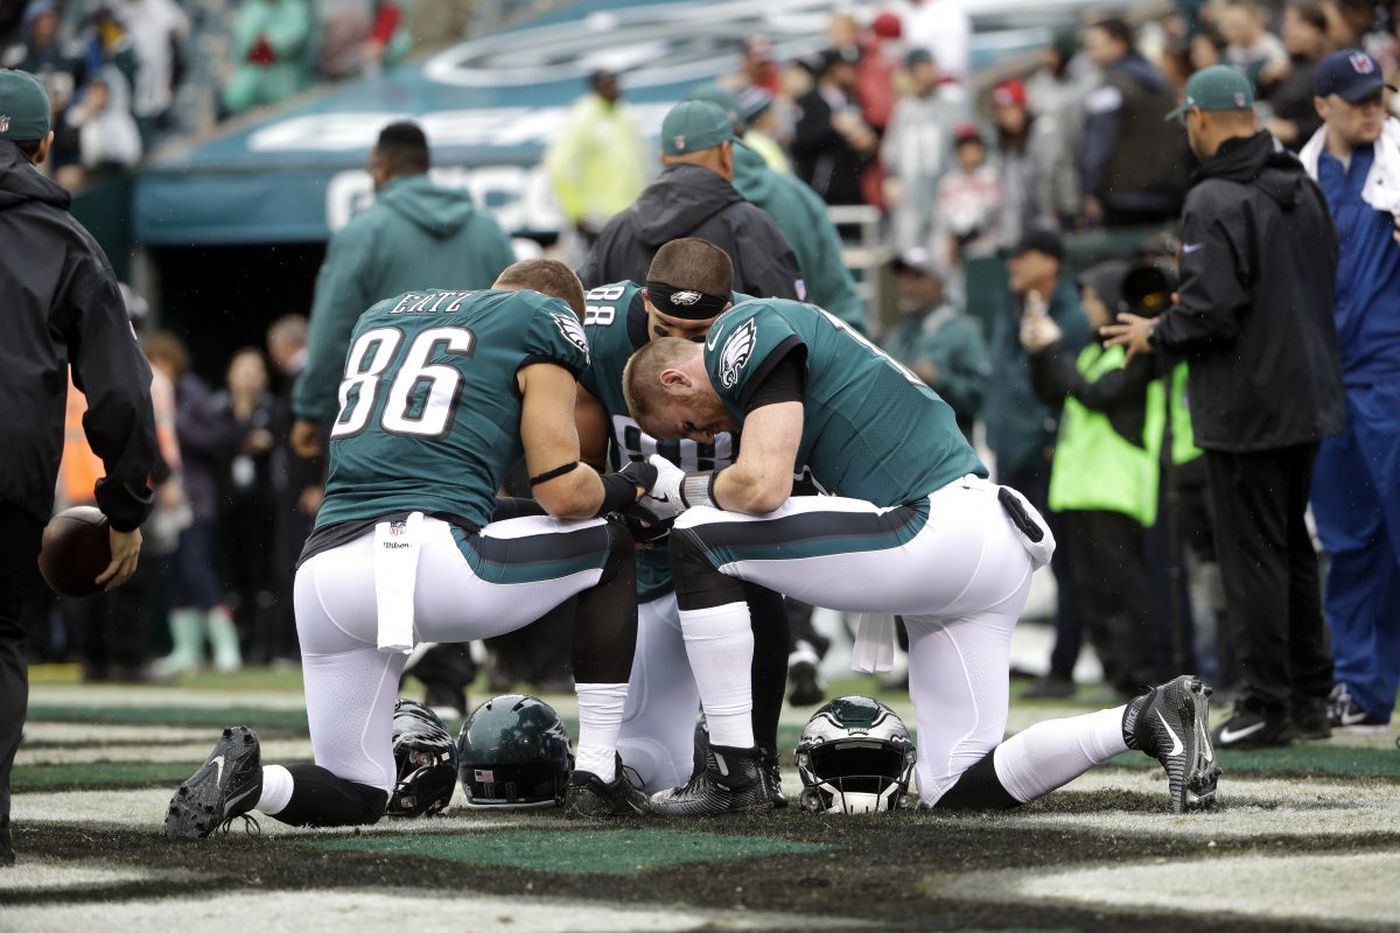 The big problem when we talk about religion and sports | Opinion